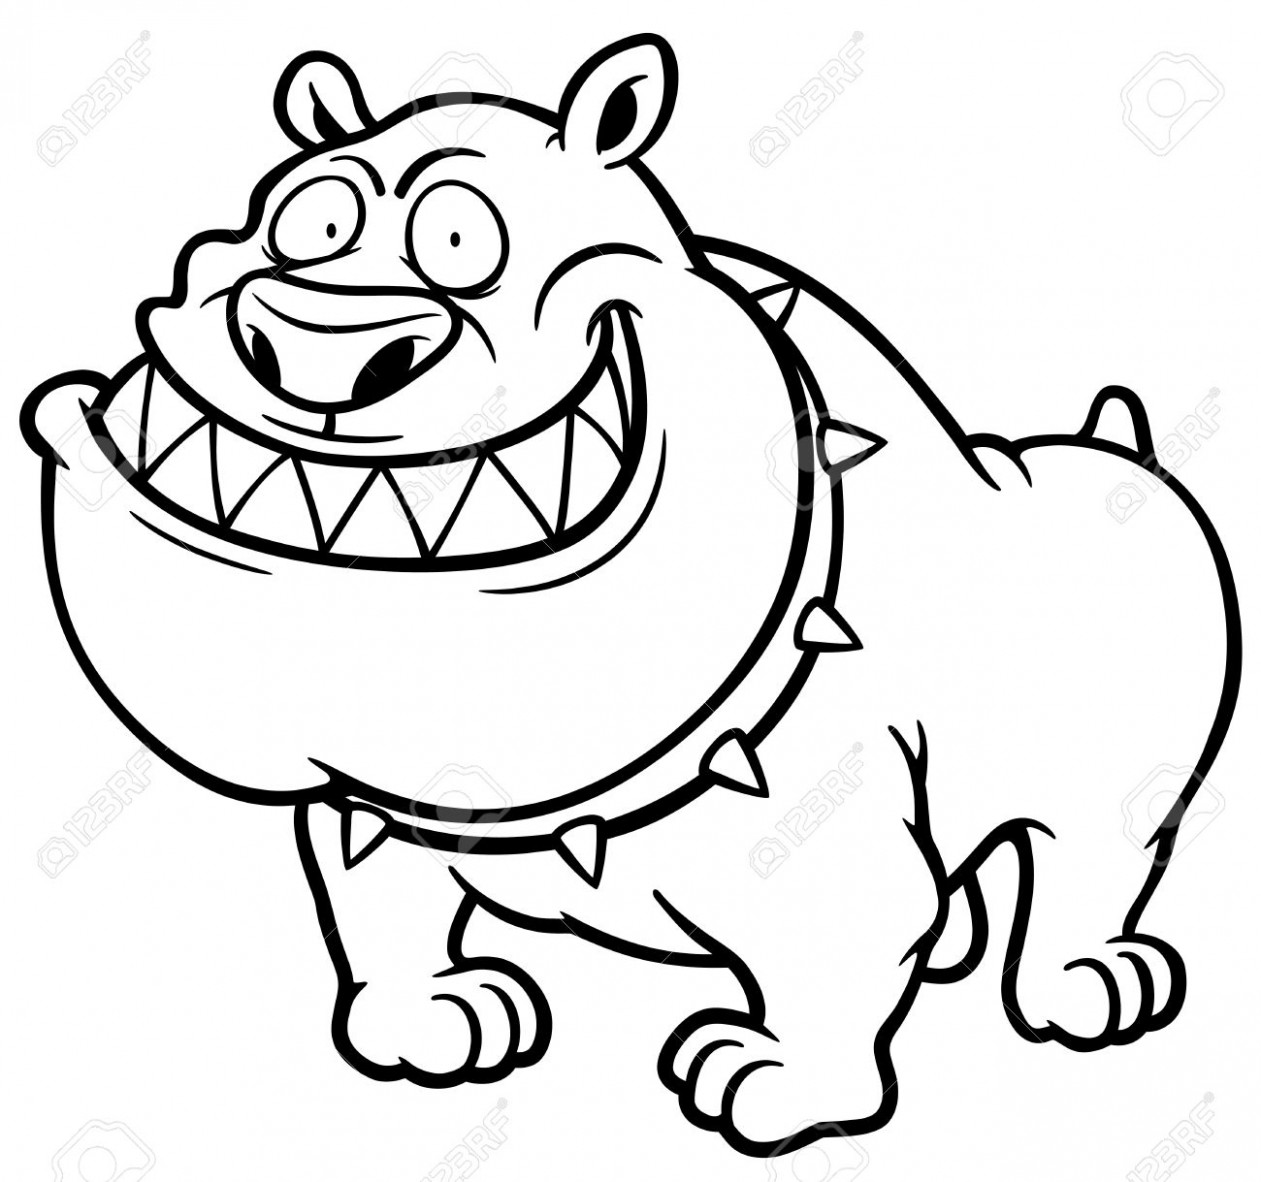 Illustration Of Angry Dog - Coloring Book Royalty Free Cliparts ...